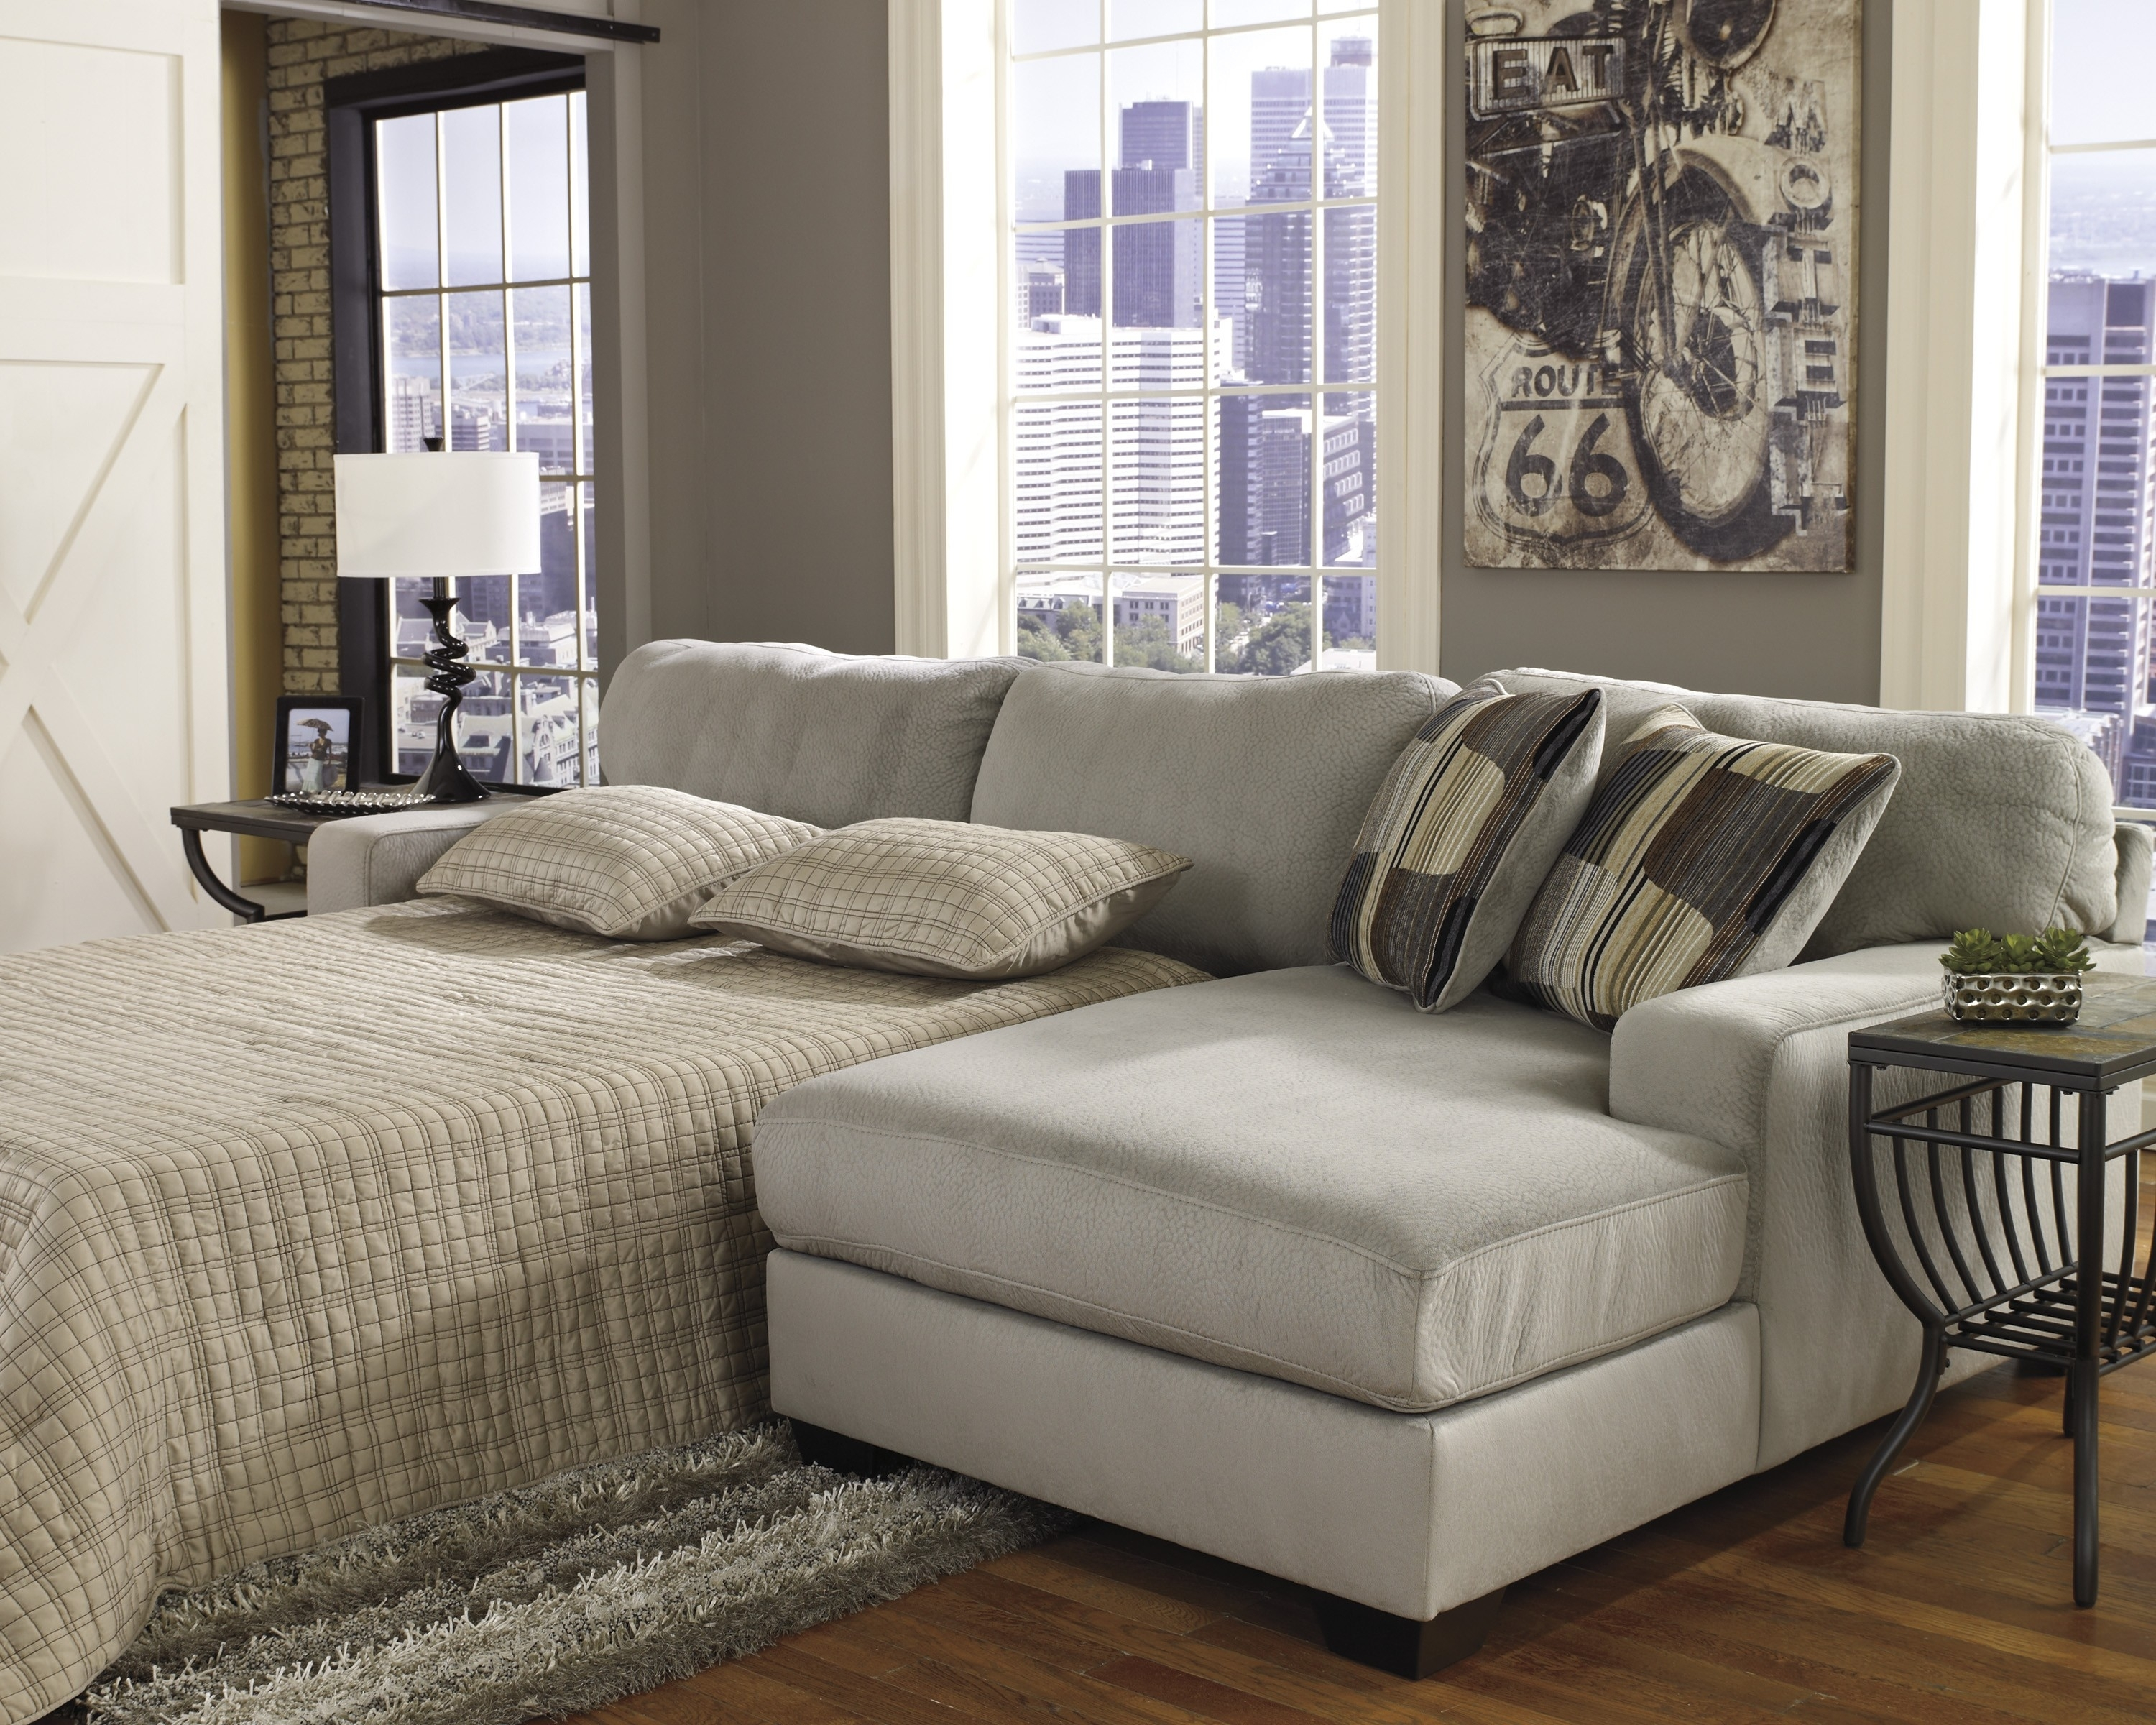 Sectional Sofa With Chaise And Sleeper – Cleanupflorida Within Sectional Sofas At Calgary (View 7 of 10)